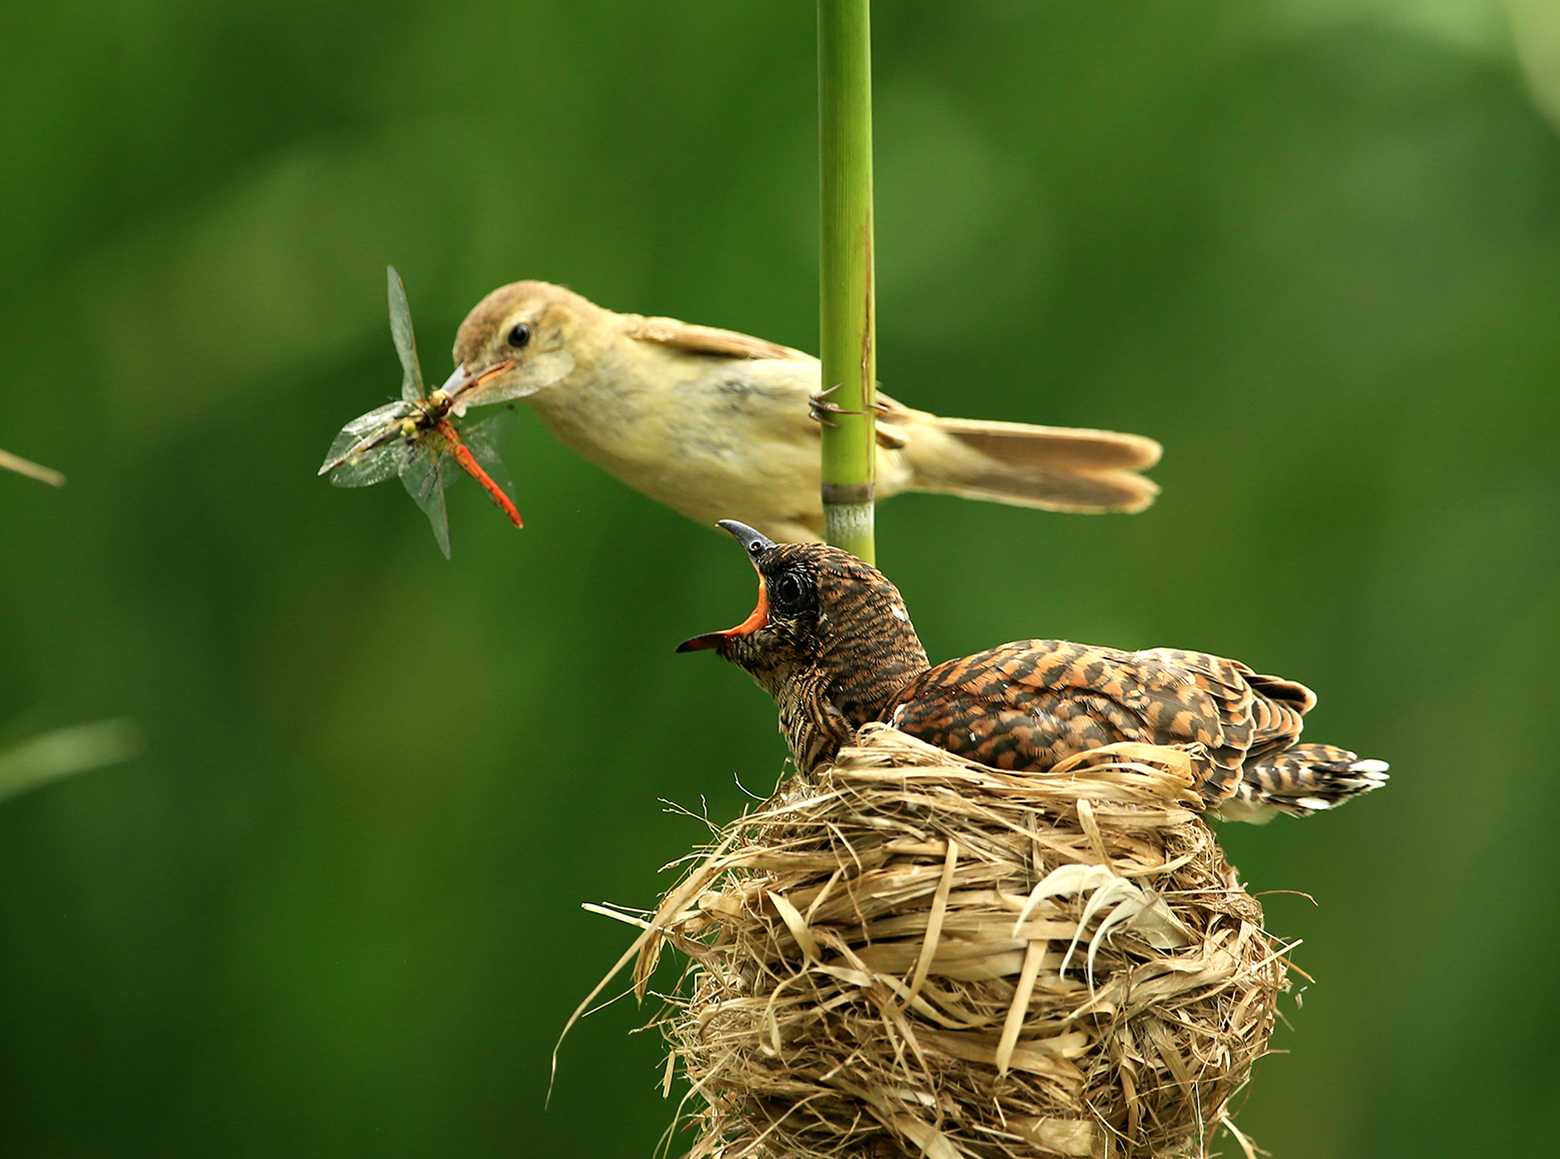 reed warbler feeding a cuckoo chick in the nest